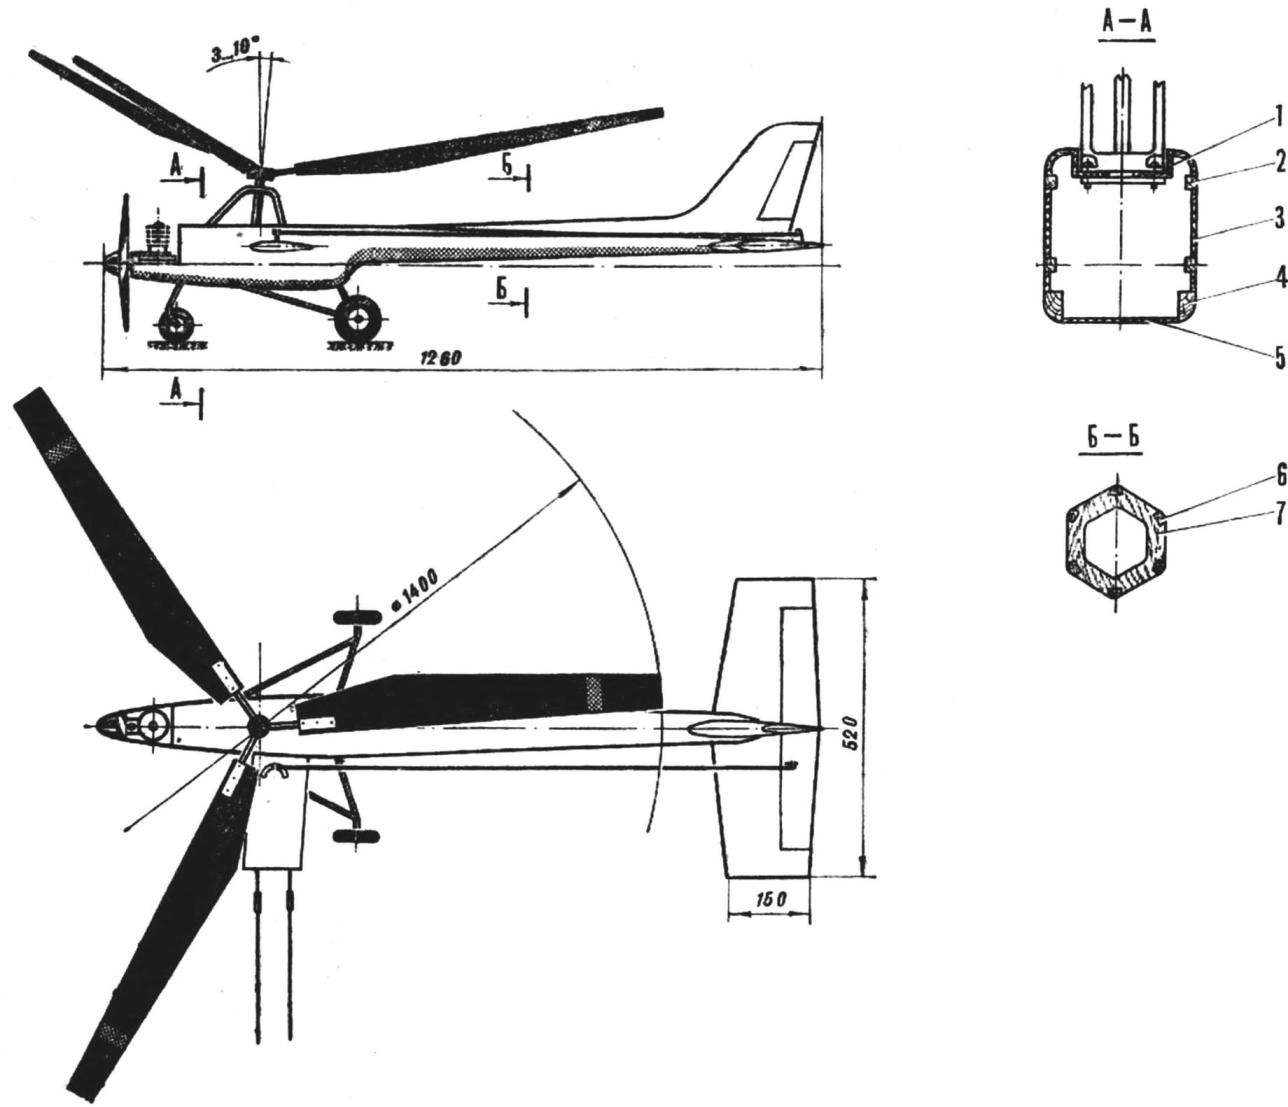 Fig. 1. General view of the model